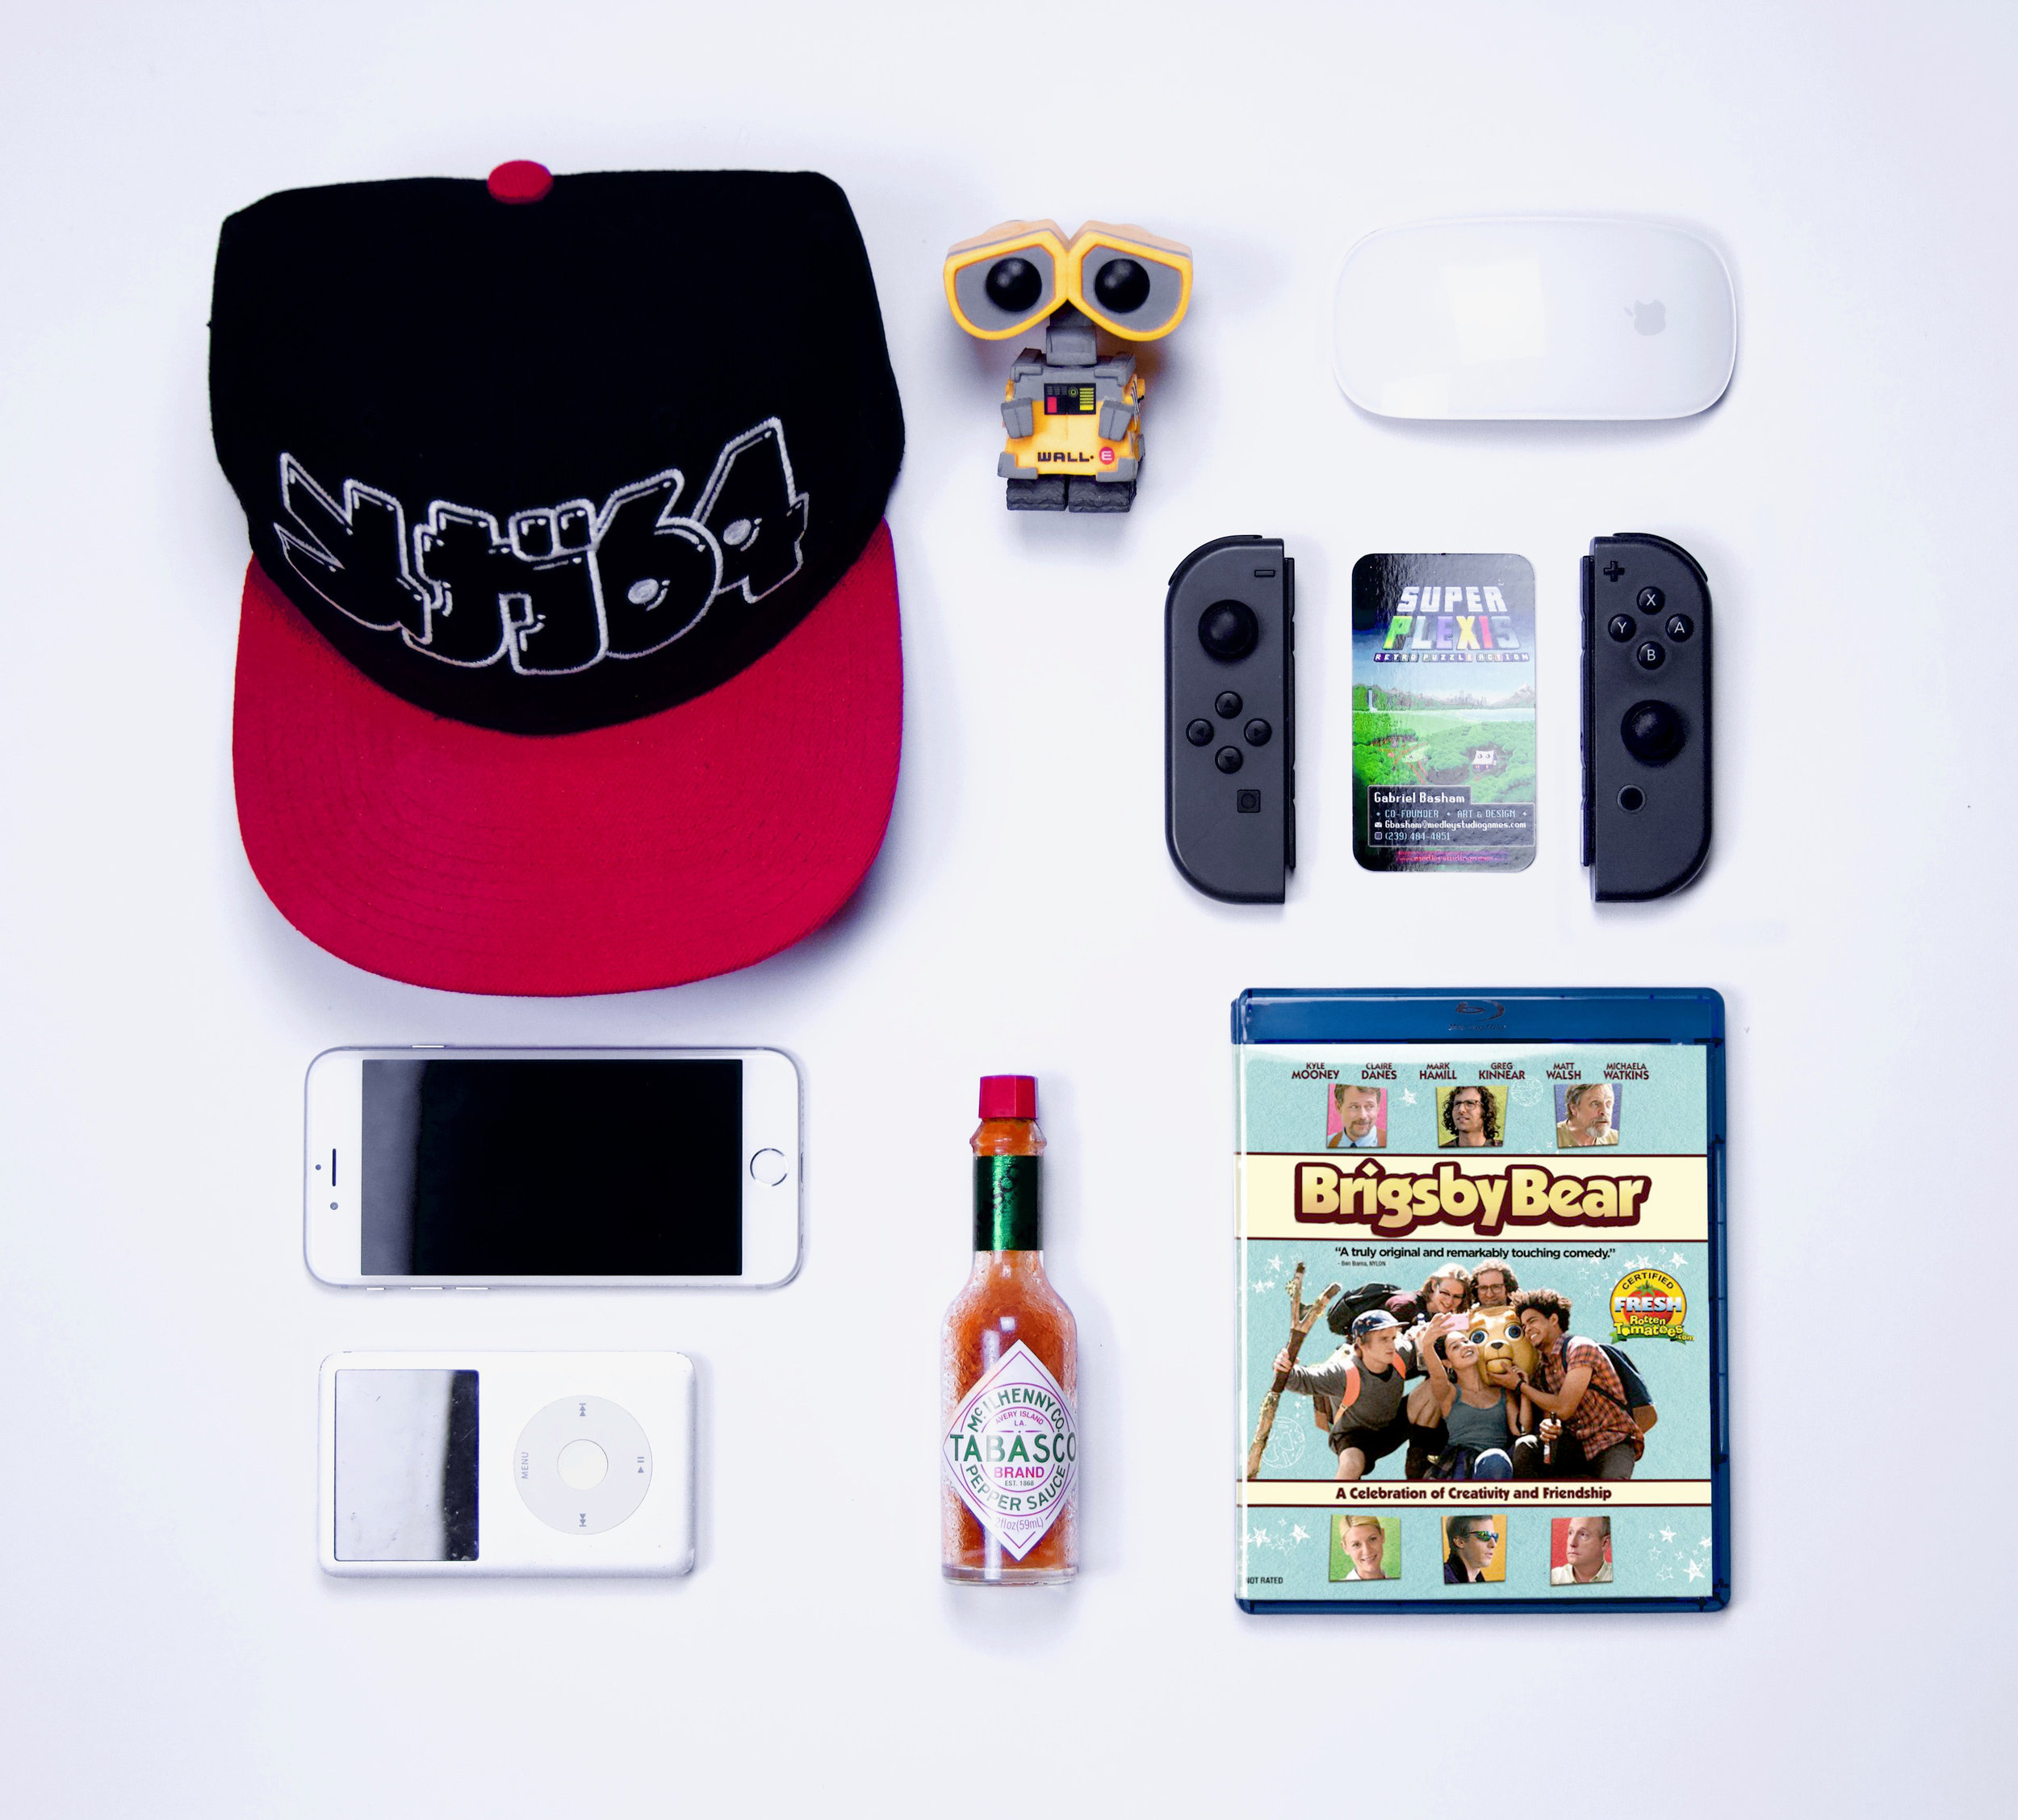 mega64-walle-apple-nintendo-switch-iphone-ipod-brigsbybear-tabasco-pokemon-echocinematics